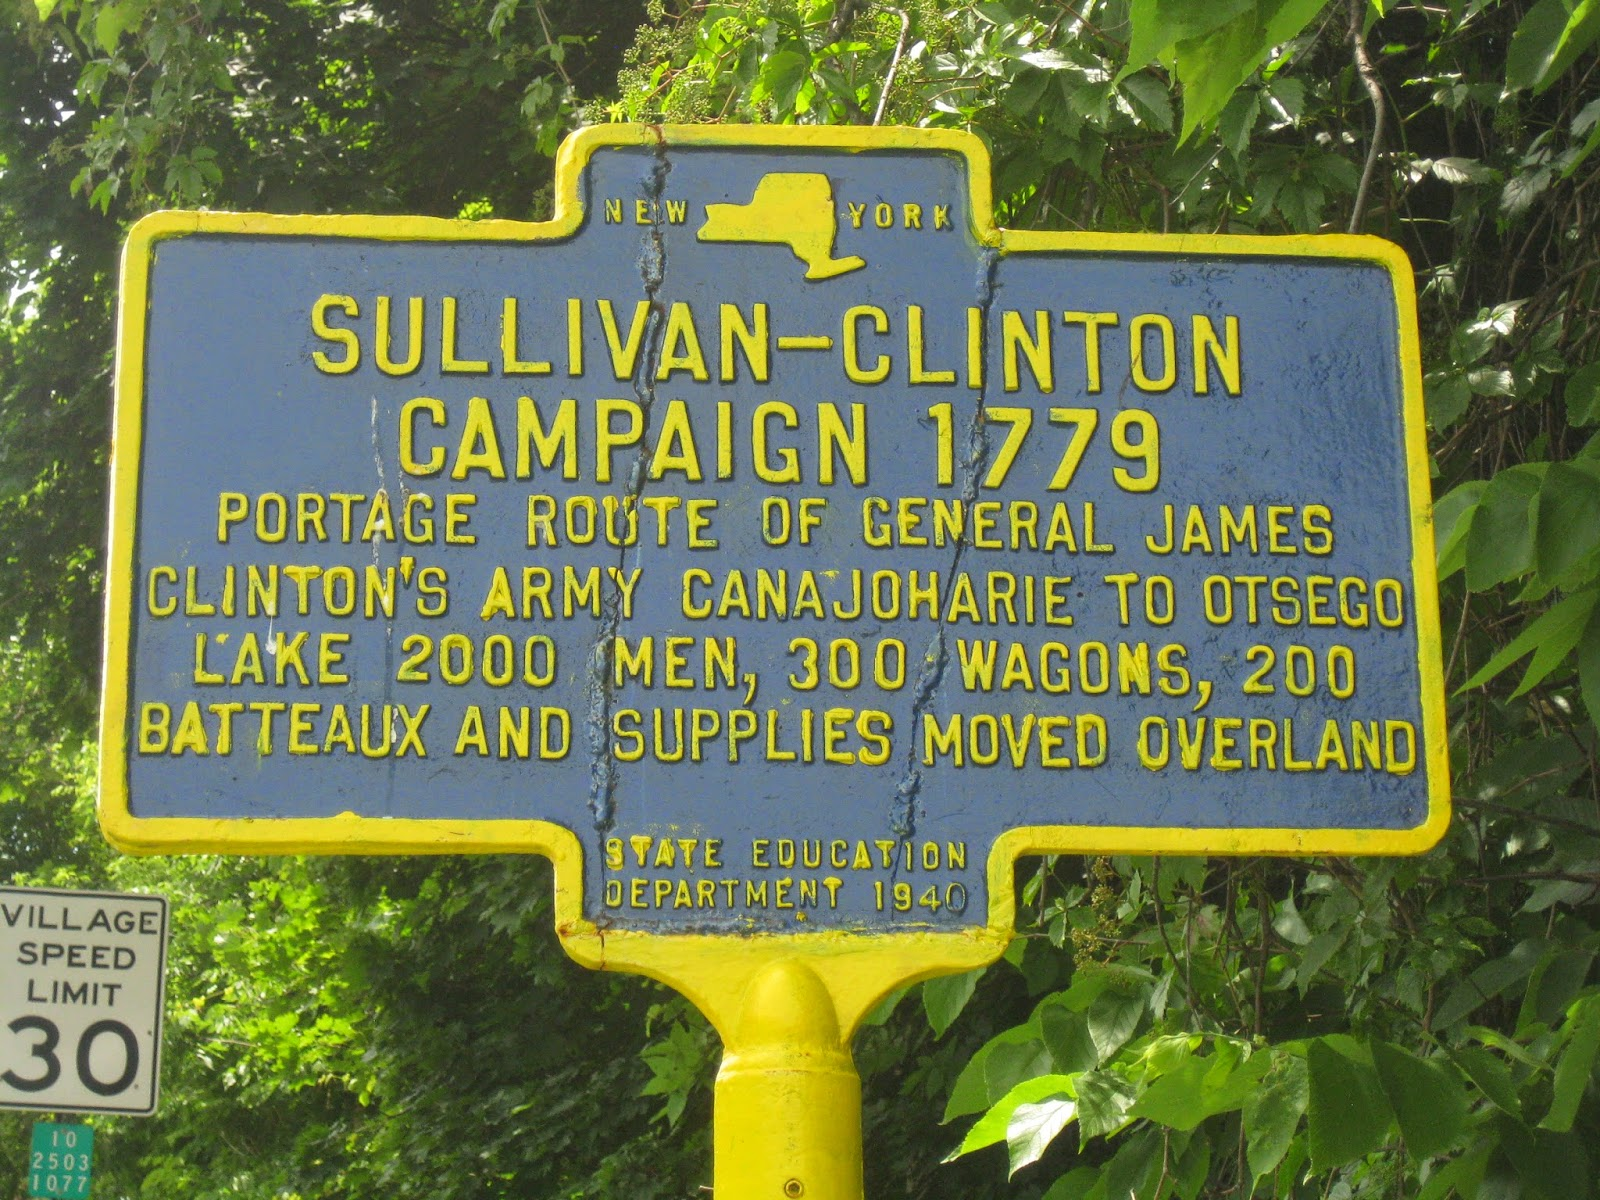 canajoharie women Watch video susan b anthony was a leading, tireless advocate for a woman's right to vote learn more at biographycom.